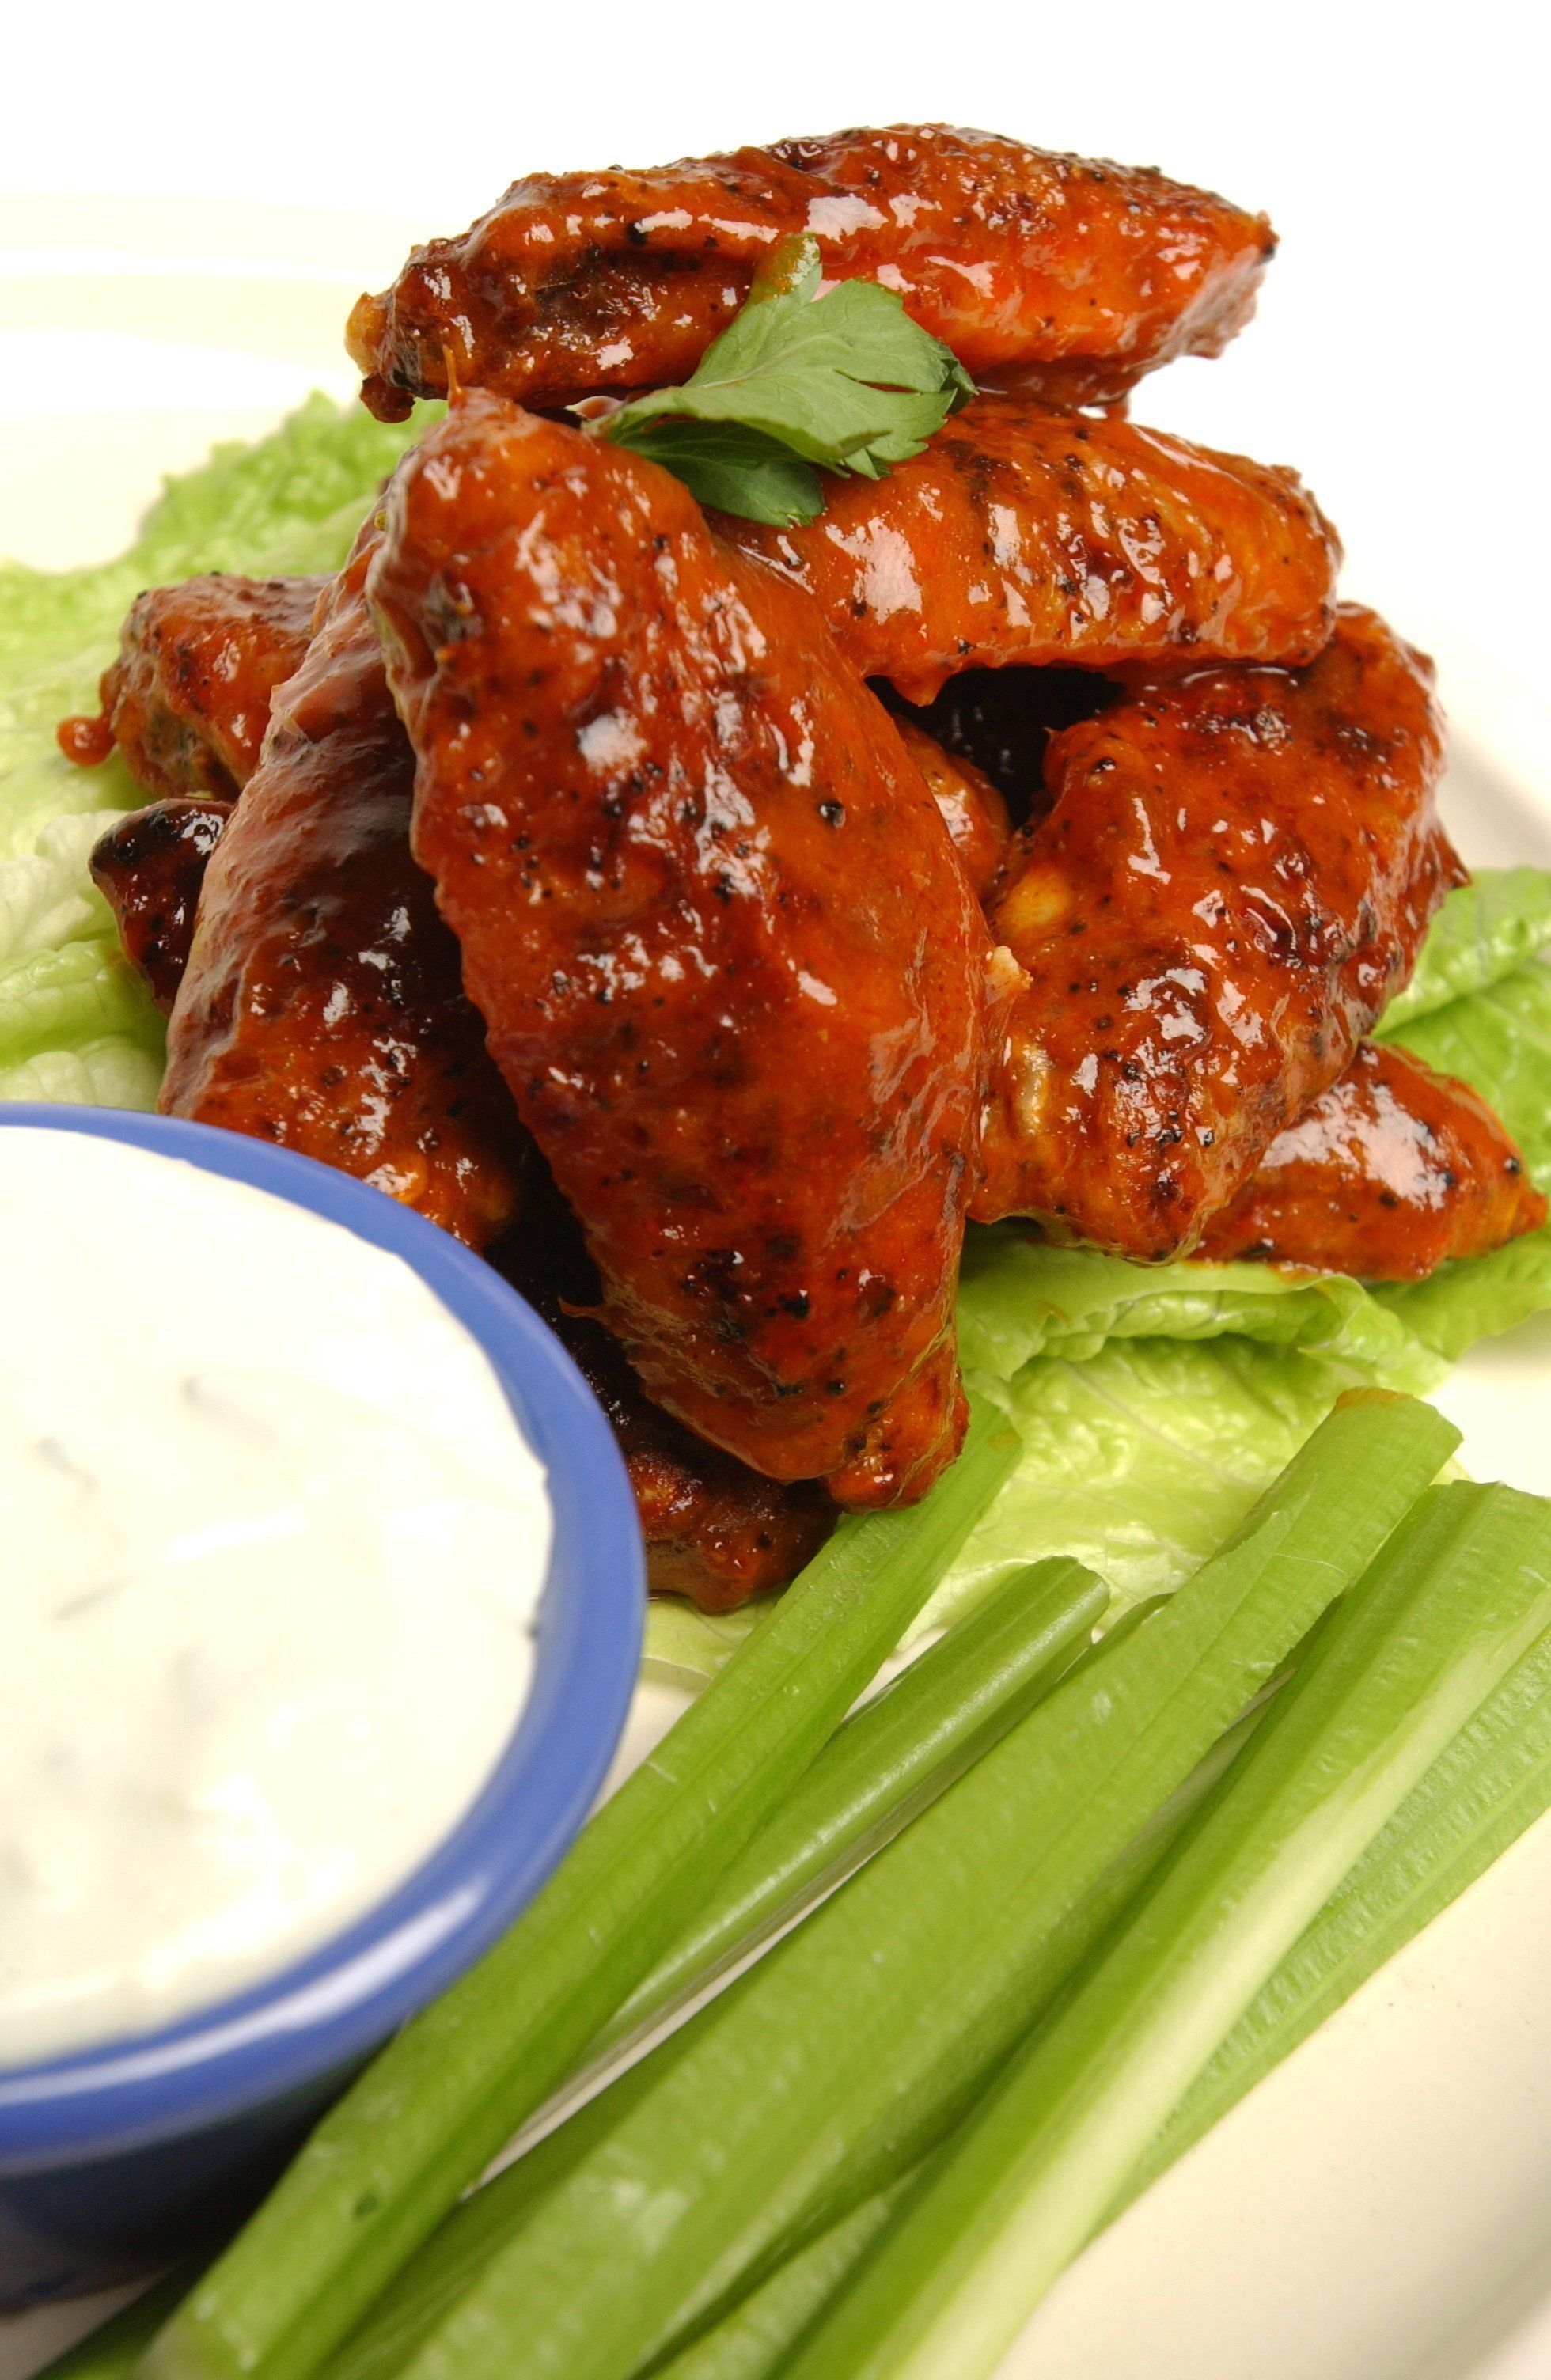 Who has the best wings in town? Judges will try to answer that question Friday at the Townsend Hotel.